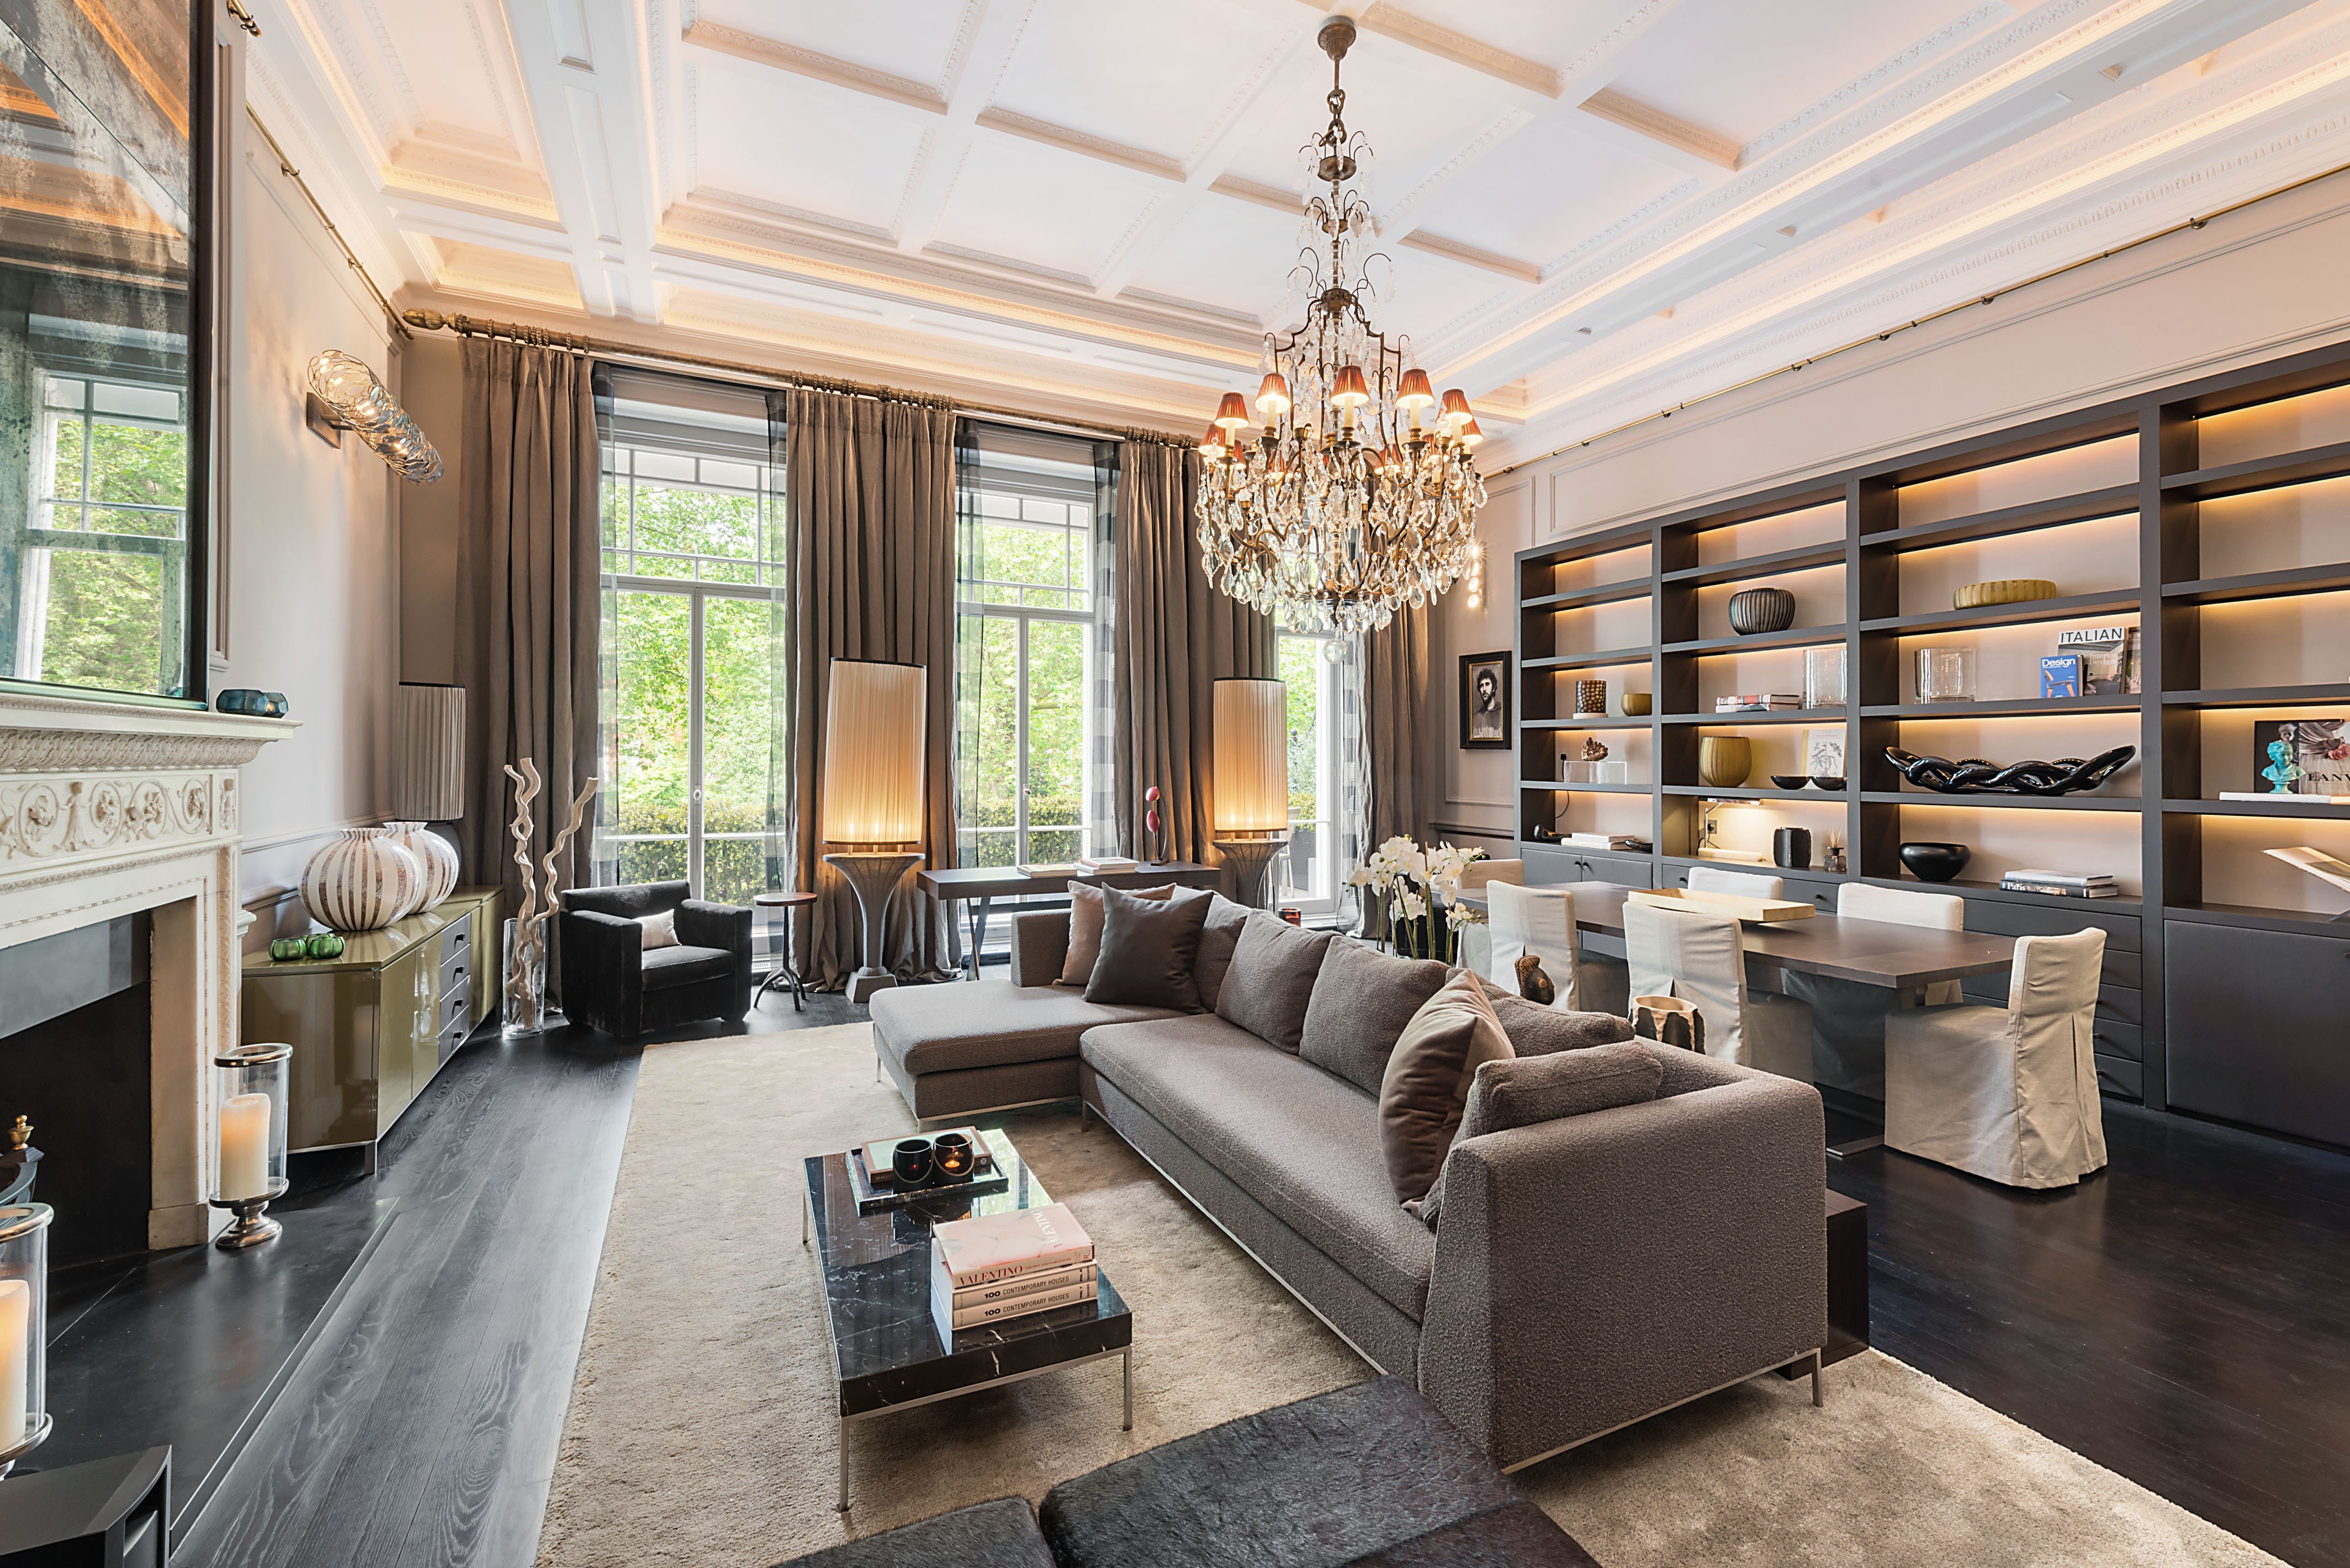 Best 1 Bedroom Flat In Cadogan Square Knightsbridge London With Pictures Original 1024 x 768